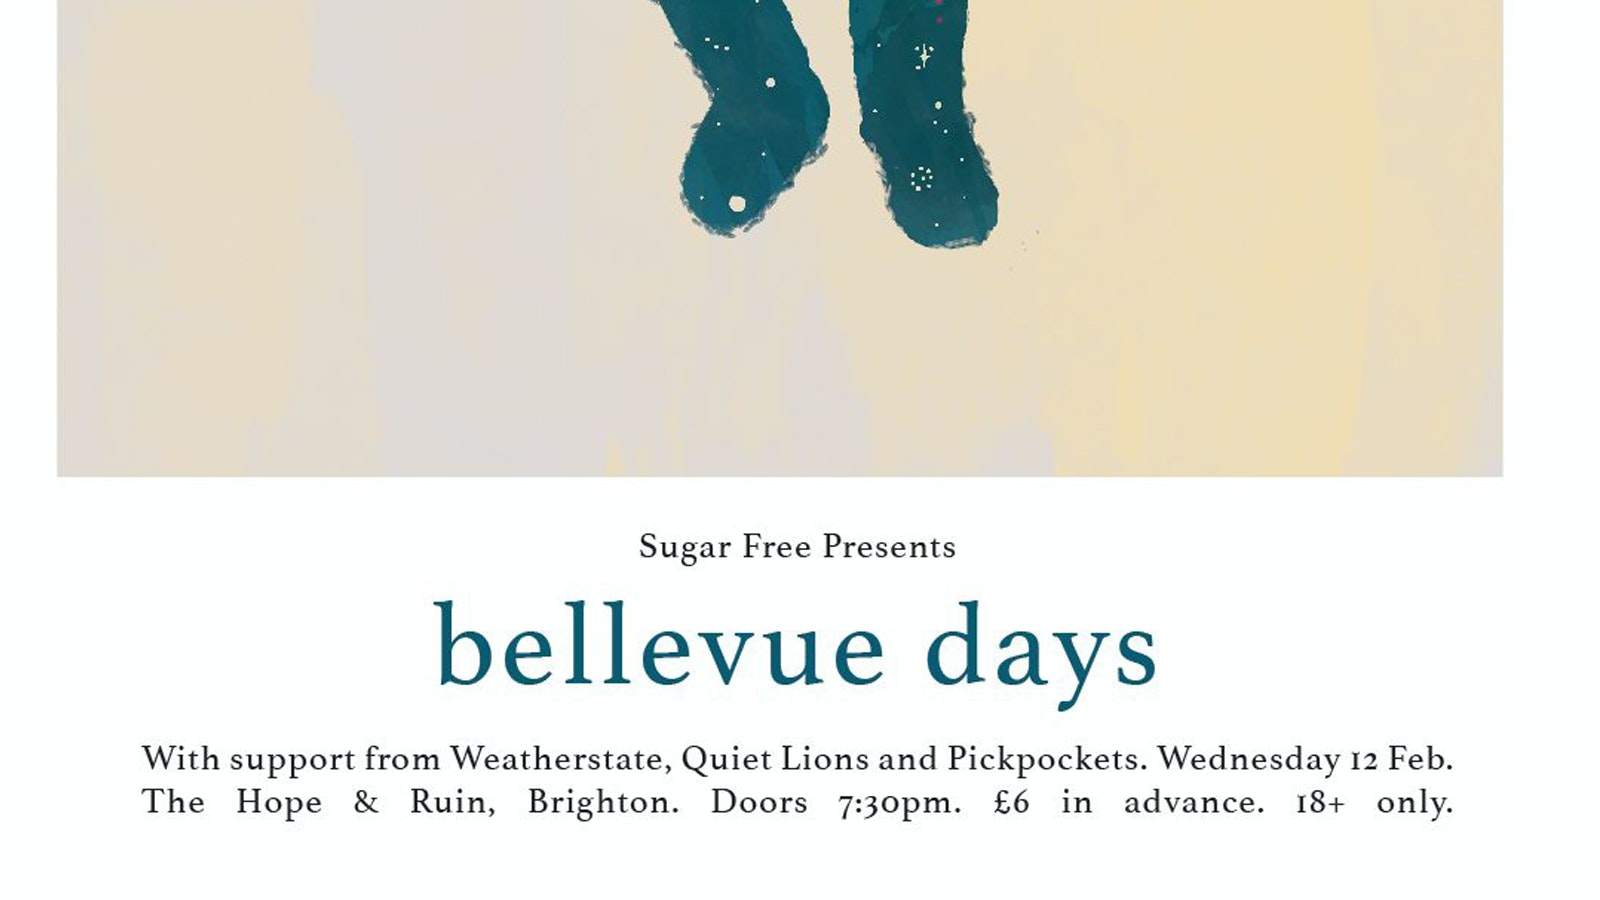 Bellevue Days + Weatherstate + Quiet Lions + Pickpockets